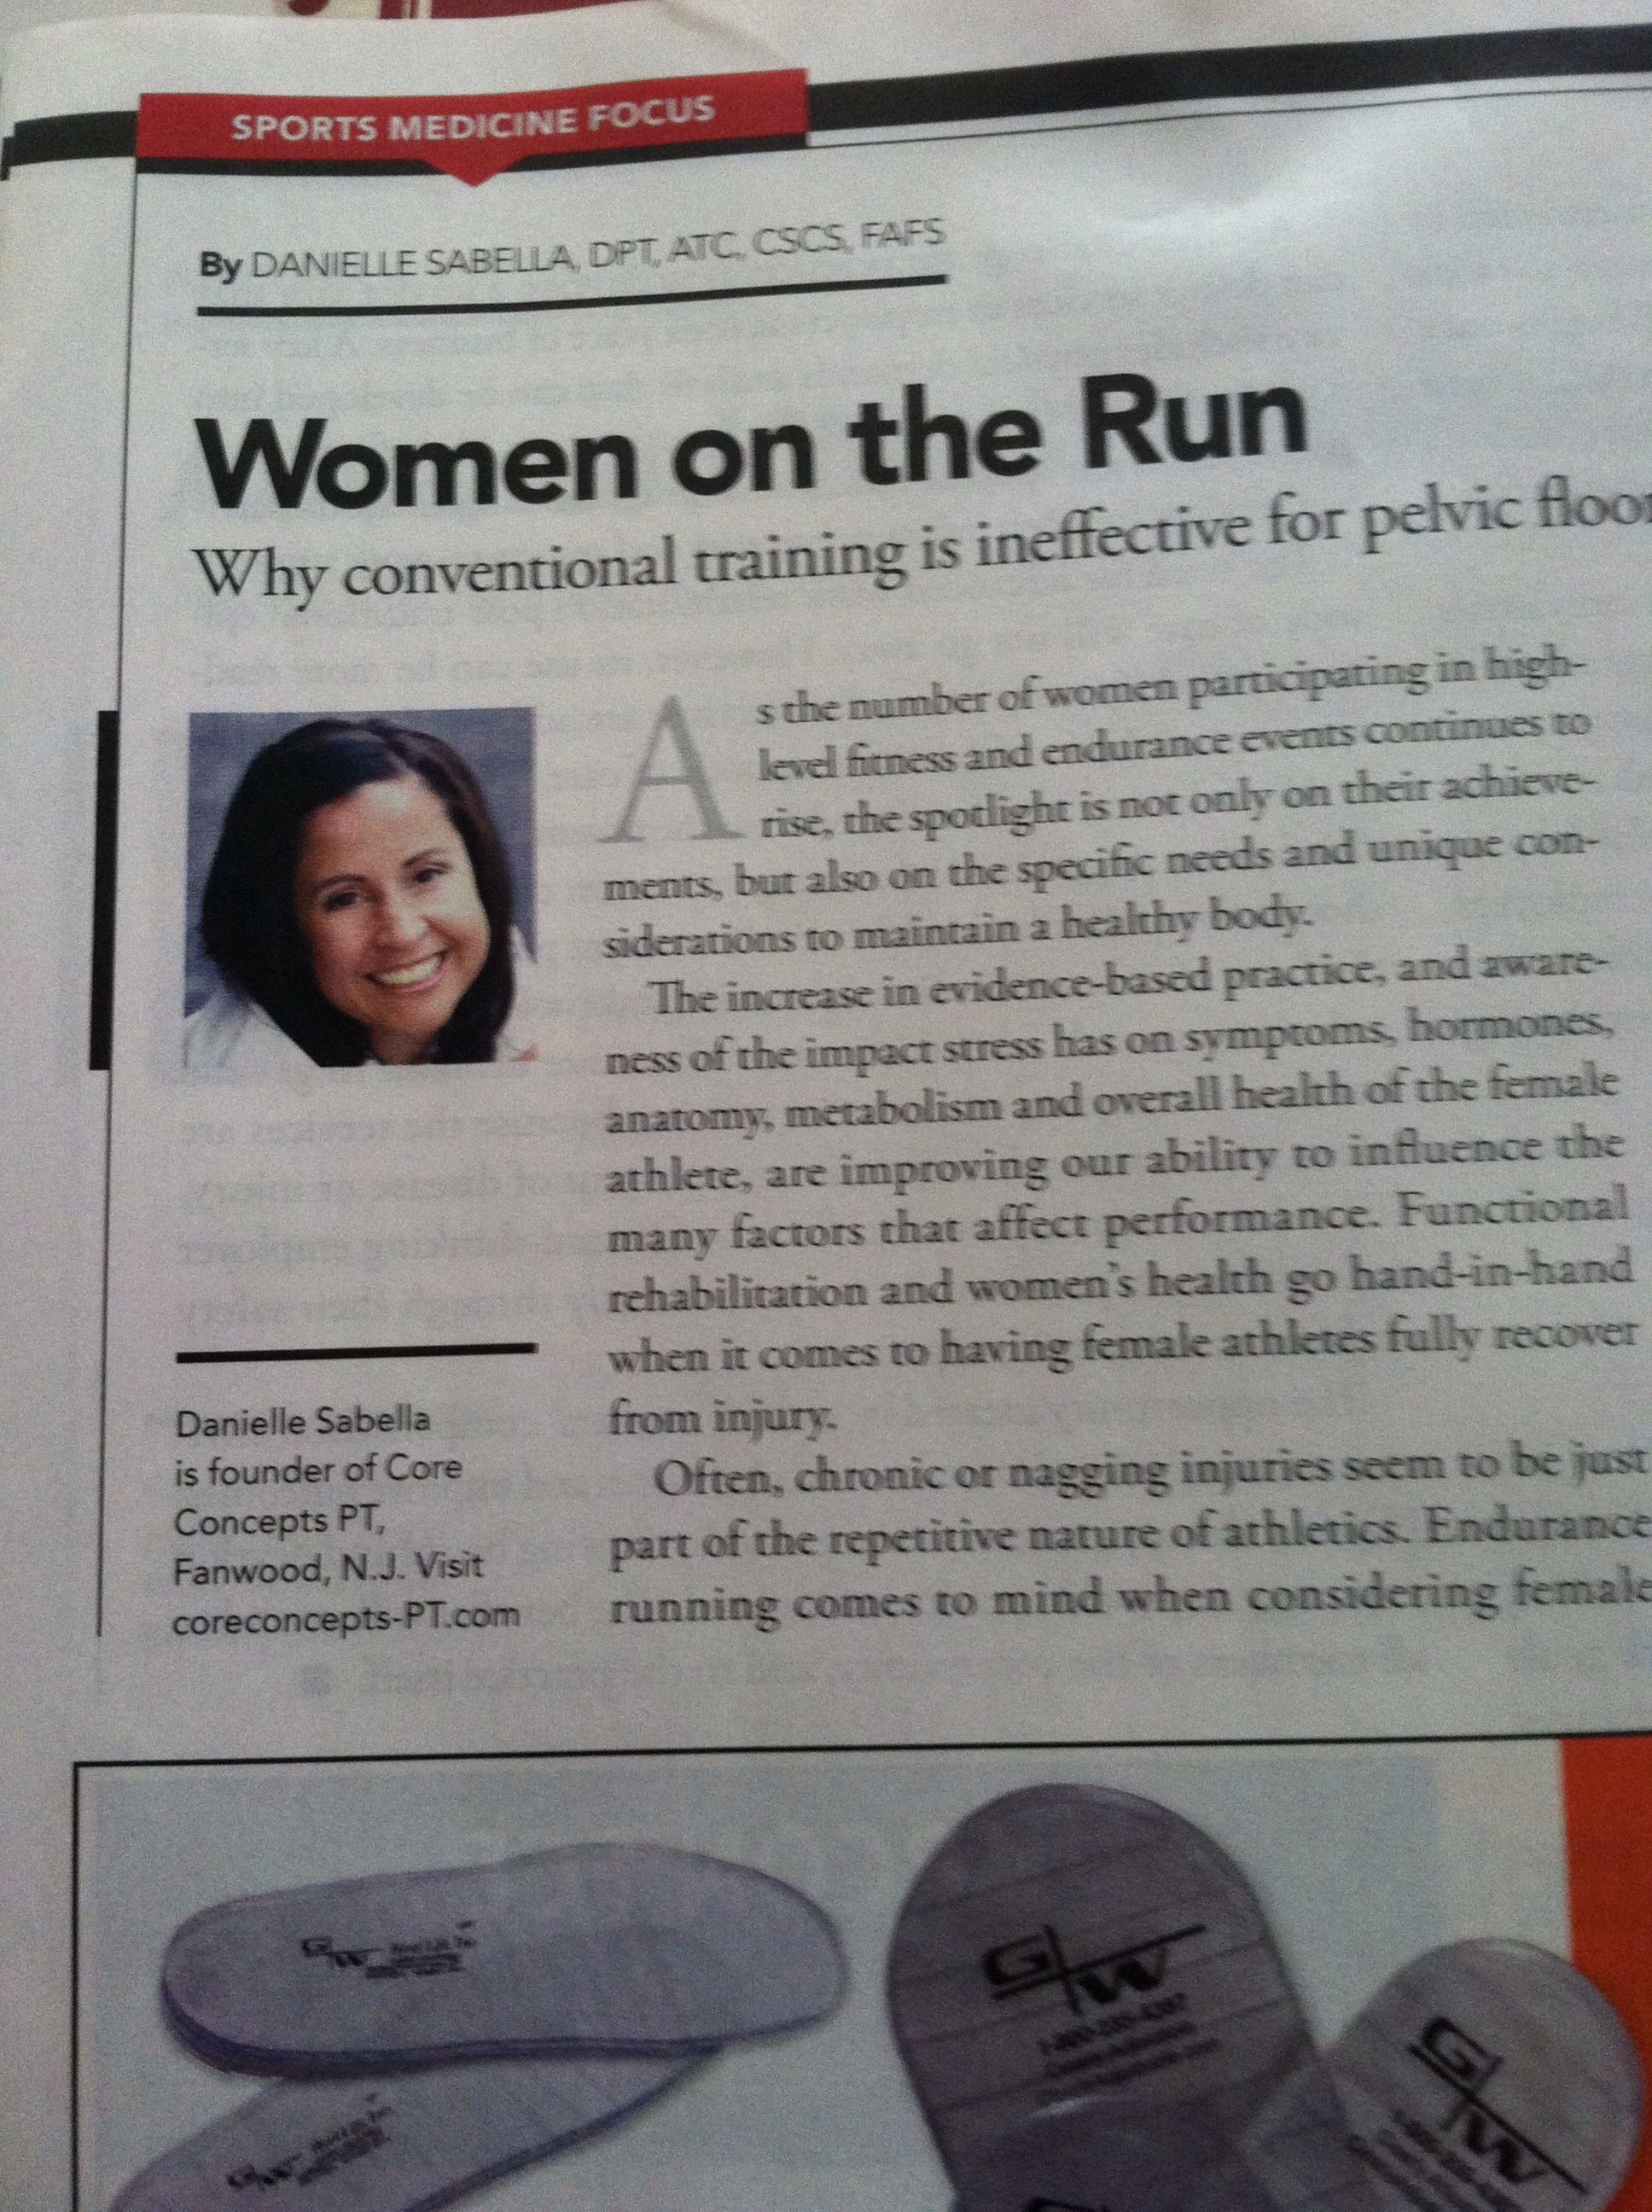 Advance physical therapy magazine - As The Rise Of Women Participating In High Level Fitness And Endurance Events Continues To Grow The Spotlight Is Not Only On Their Achievements